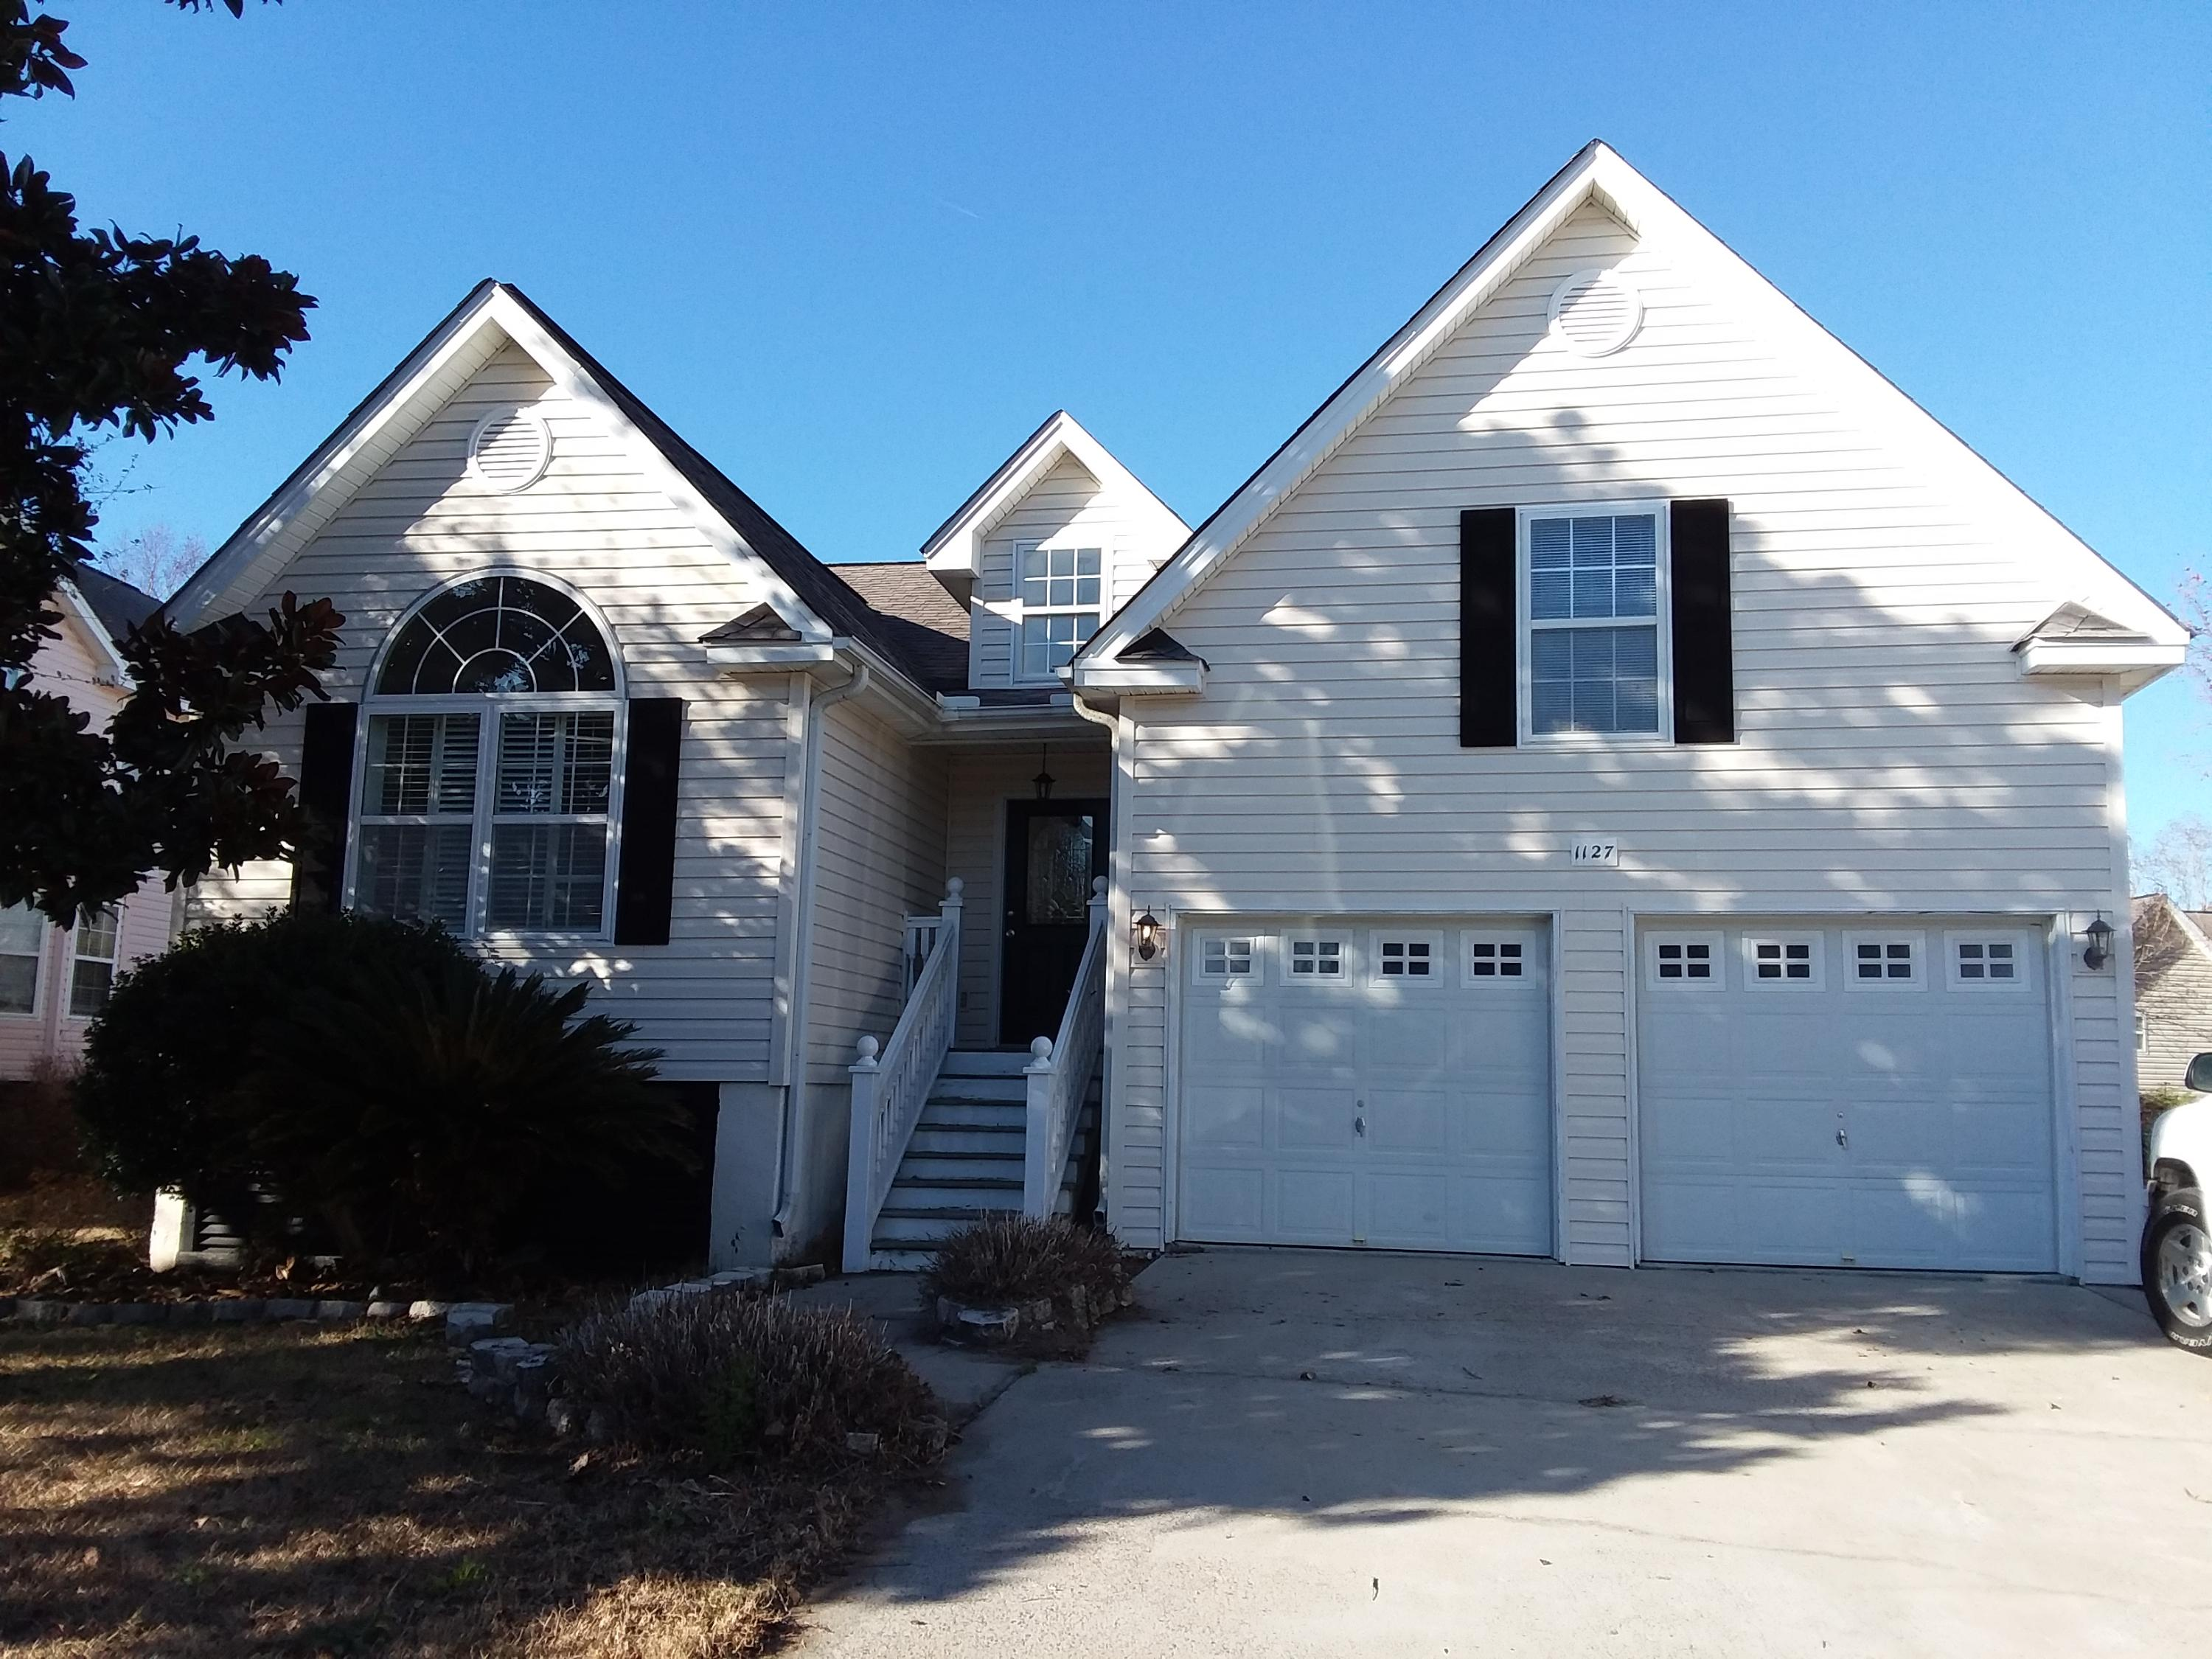 Home for sale 1127 Clearspring Drive, Ocean Neighbors, James Island, SC